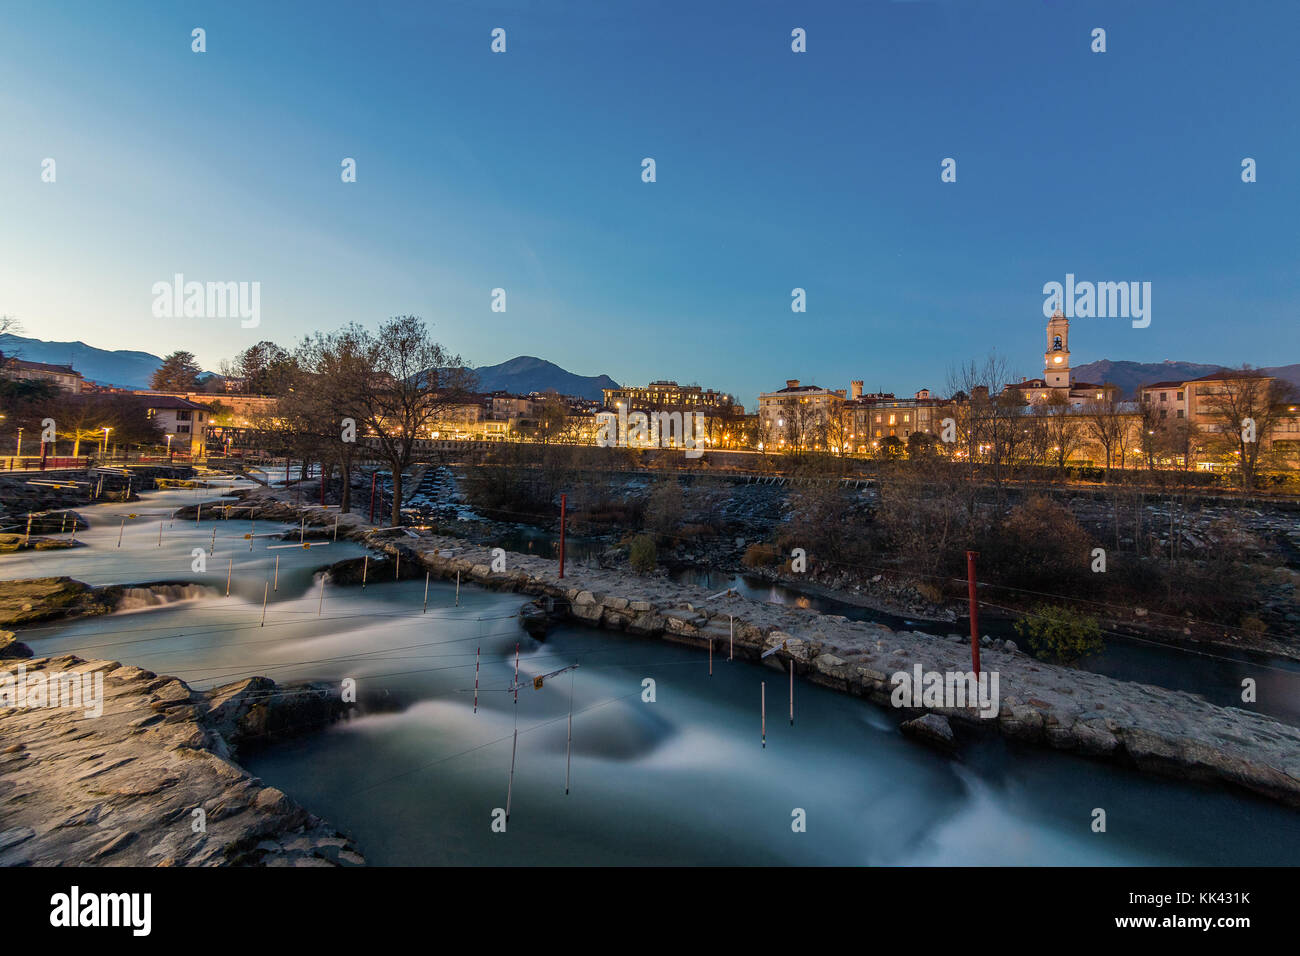 IMG_3347 Blue Hour in Ivrea Piemonte Italy canoe Stadium The Dora Baltea river in Ivrea in Canavese province of - Stock Image